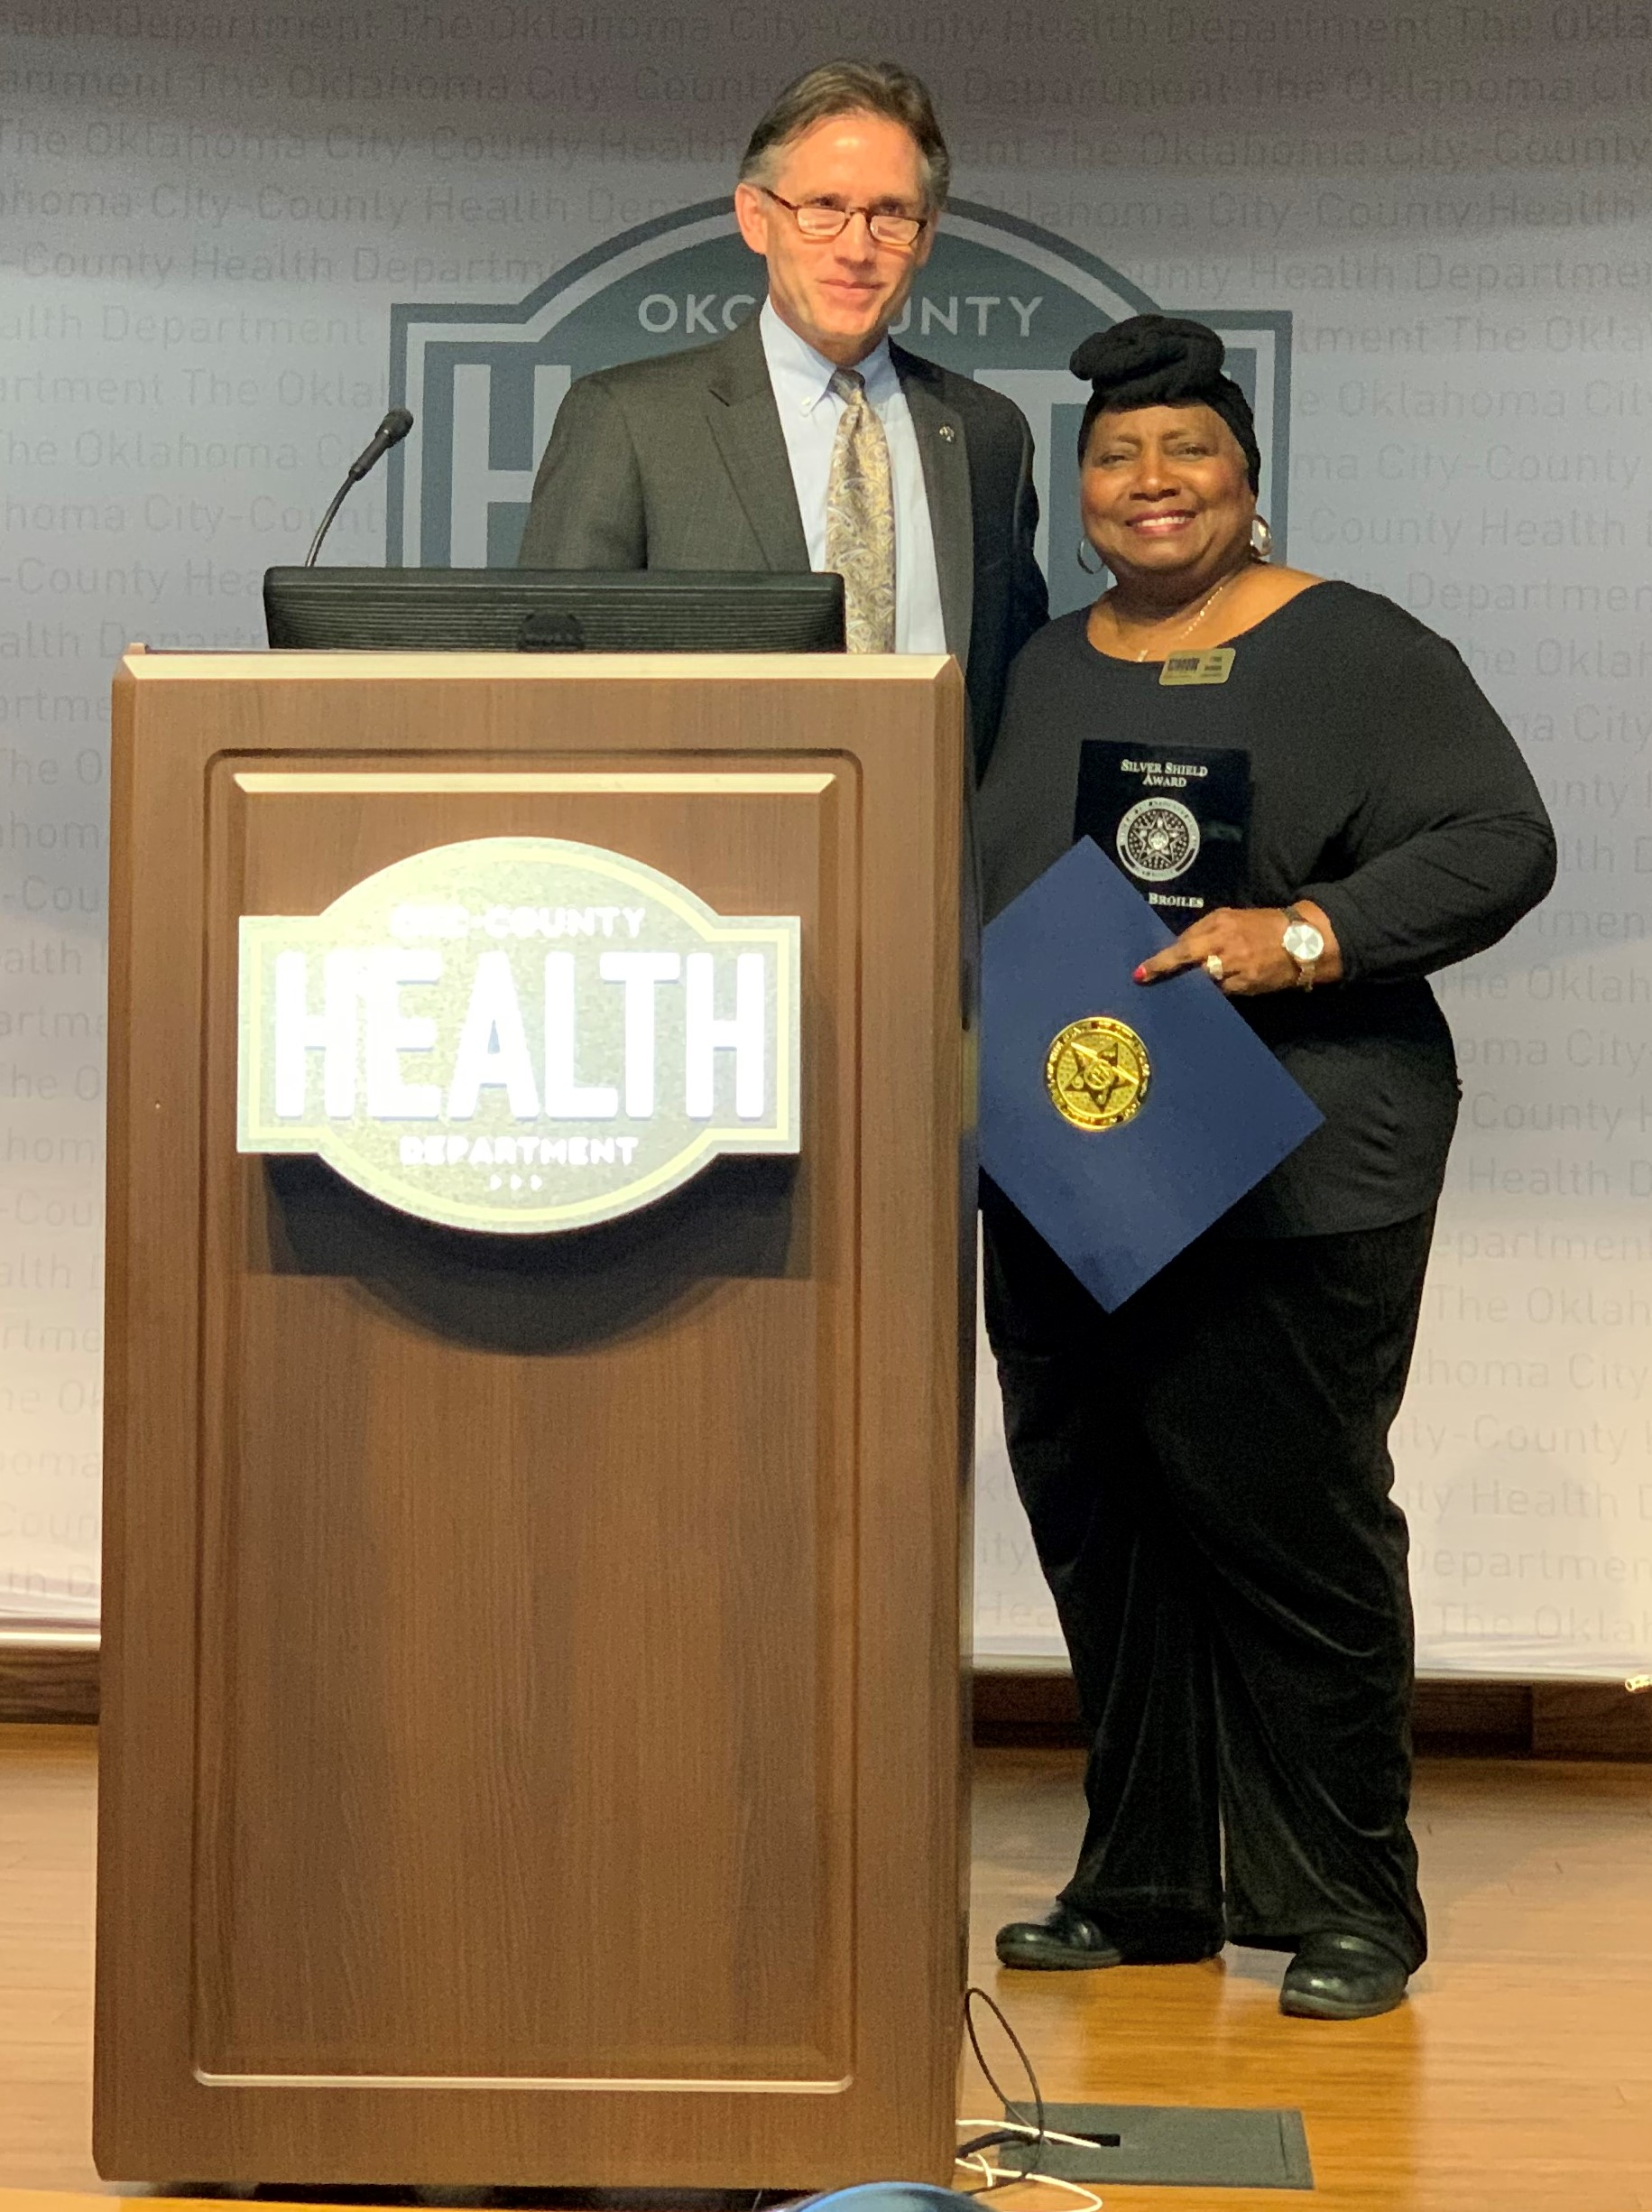 Ethel Broiles Attorney General Mike Hunter Consumer Protection Day.jpg